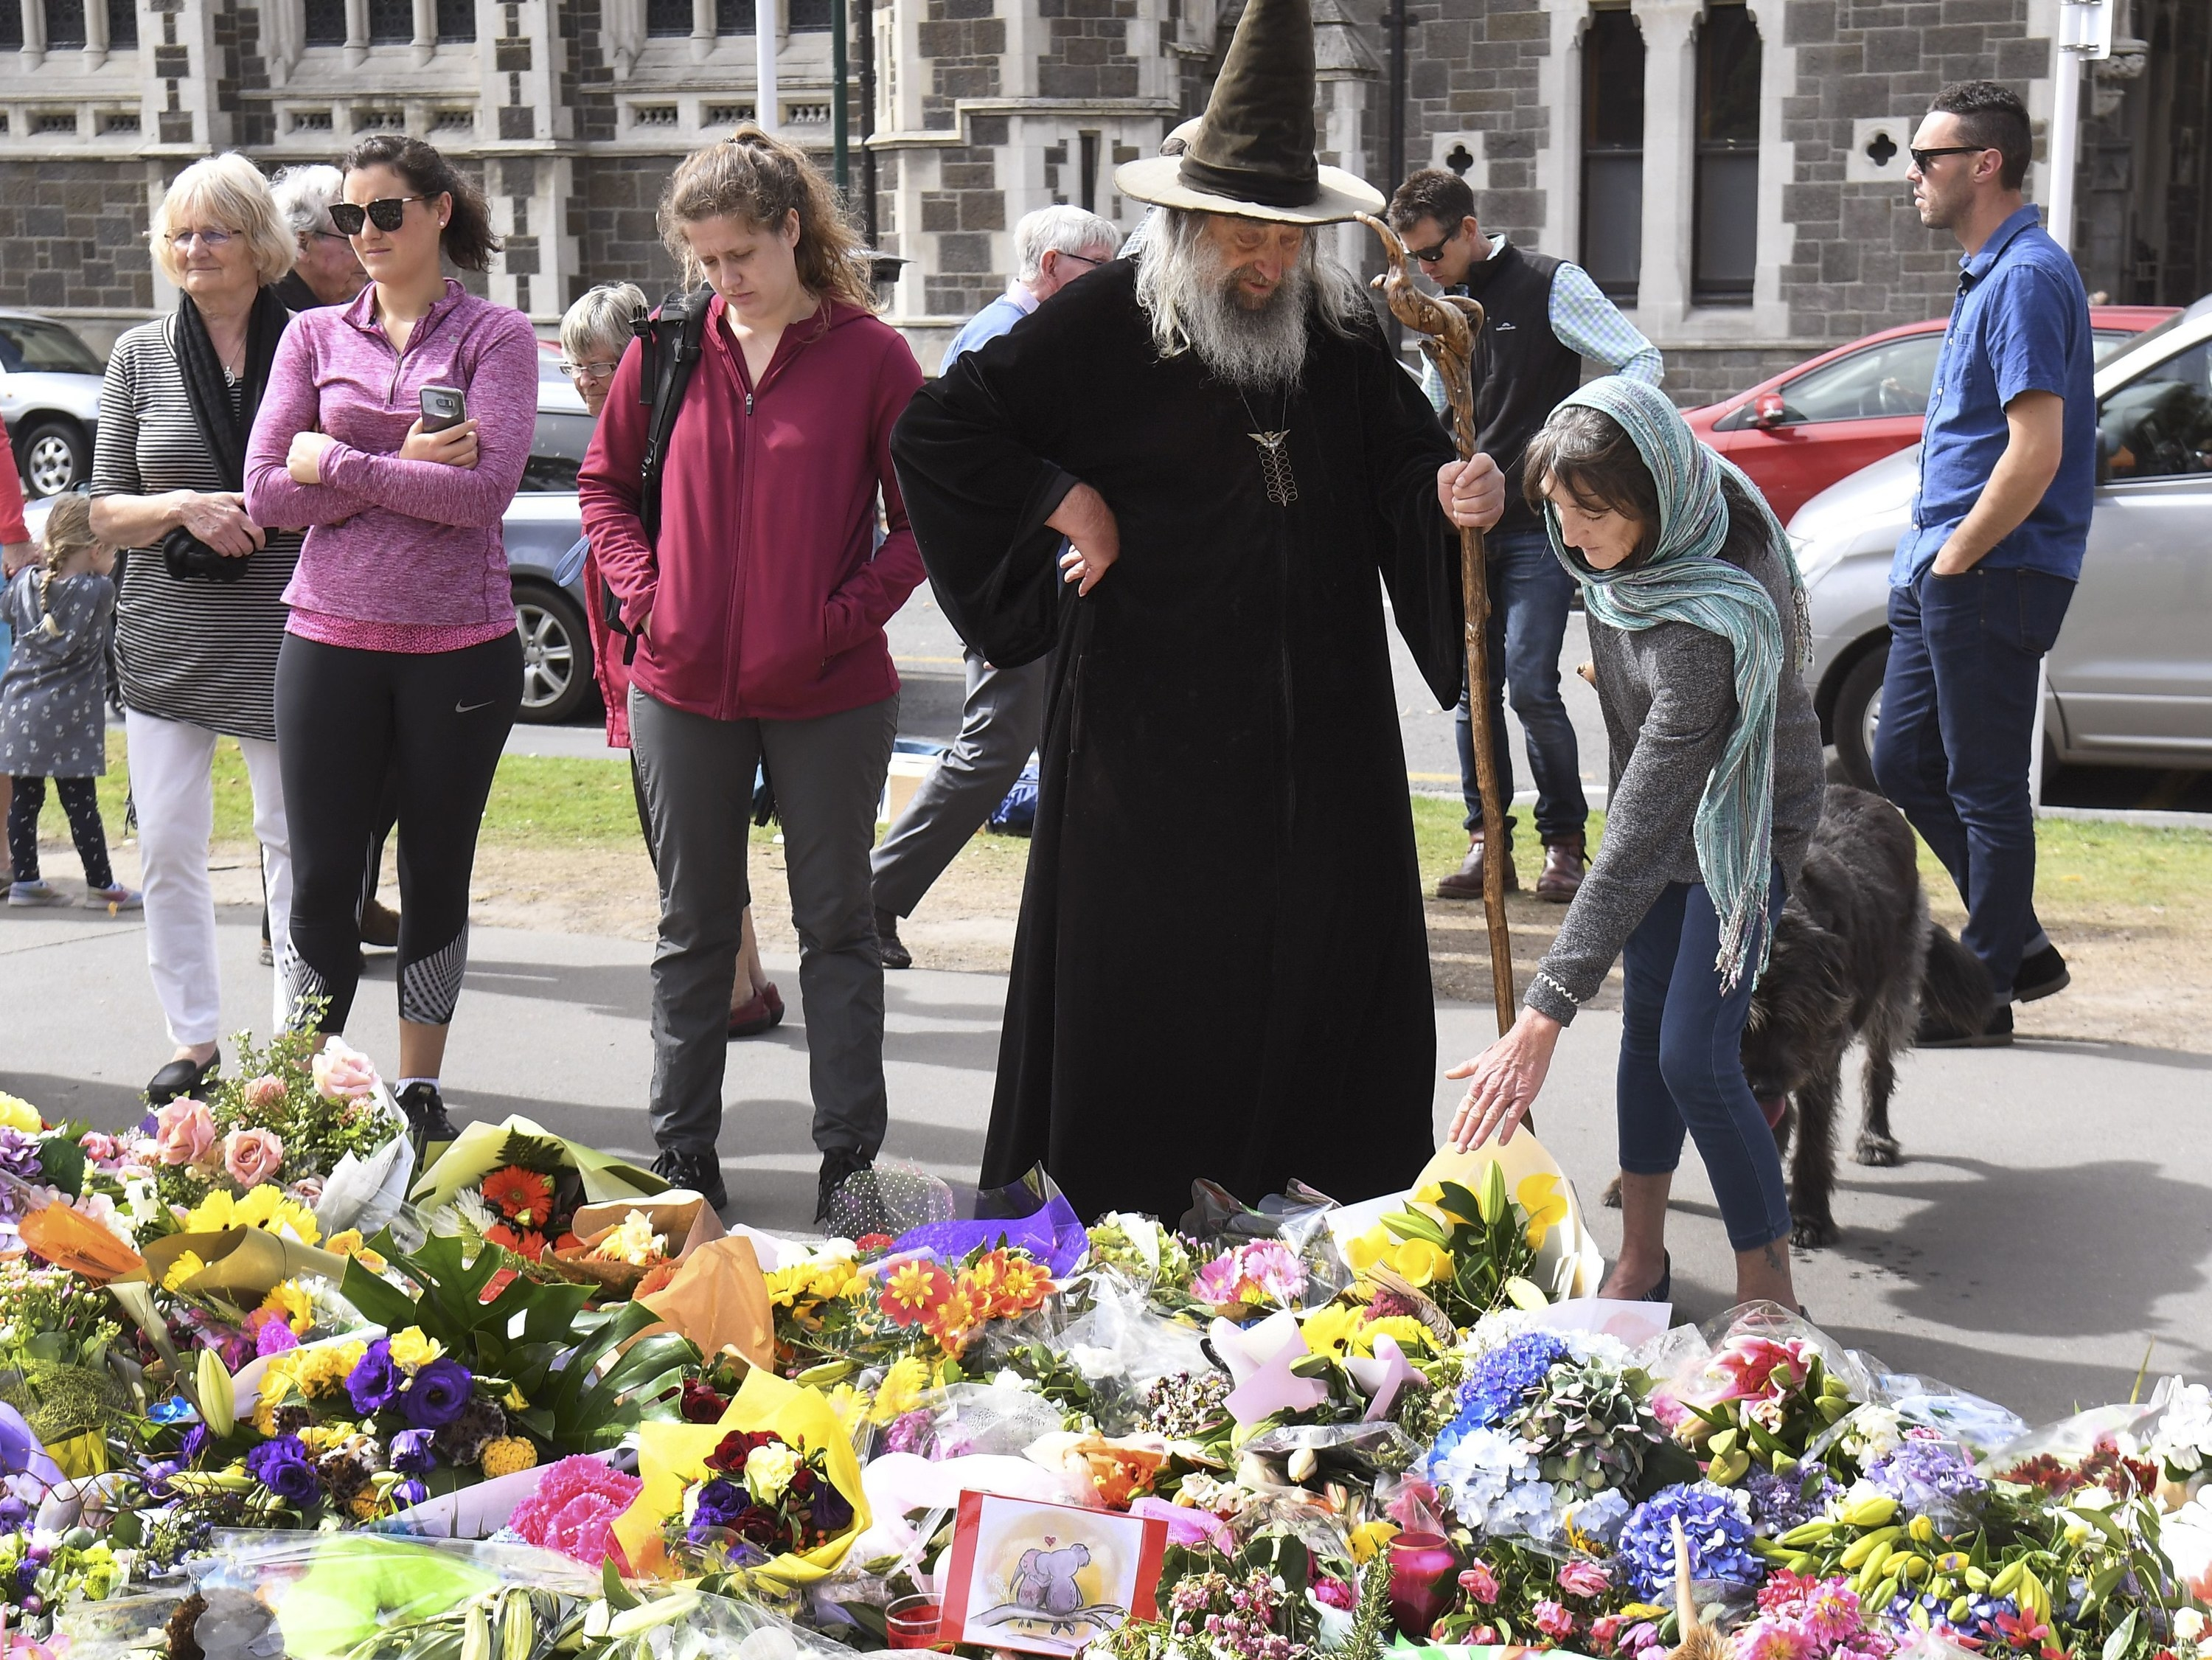 Wizard wearing dark robes standing in front of a memorial blanketed with flowers. There are many people surrounding him